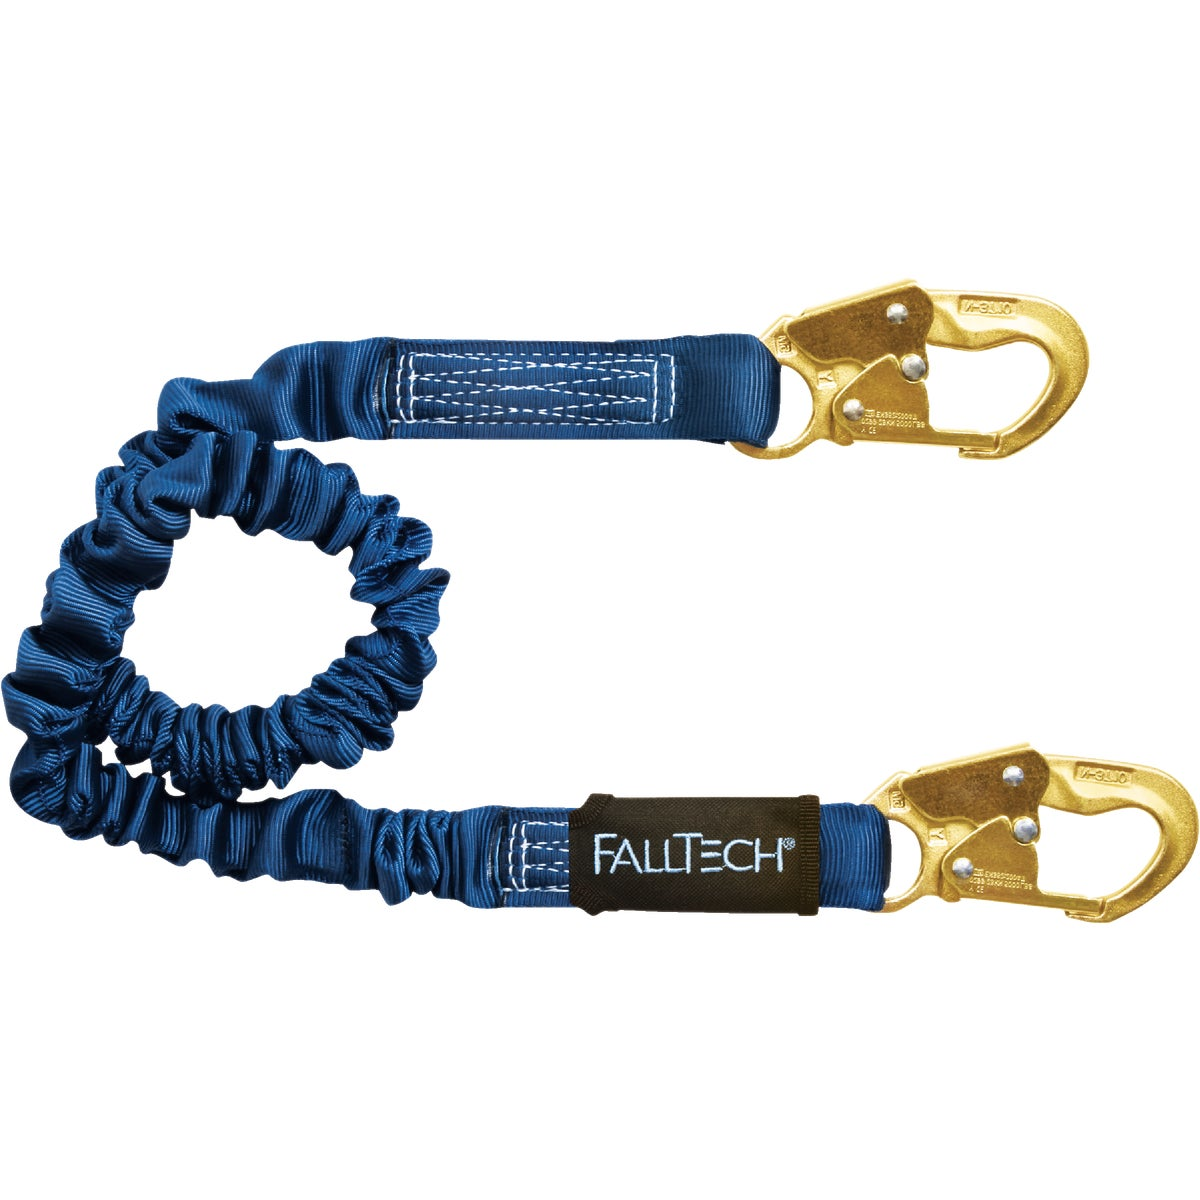 6'SHOCK ABSORB LANYARD